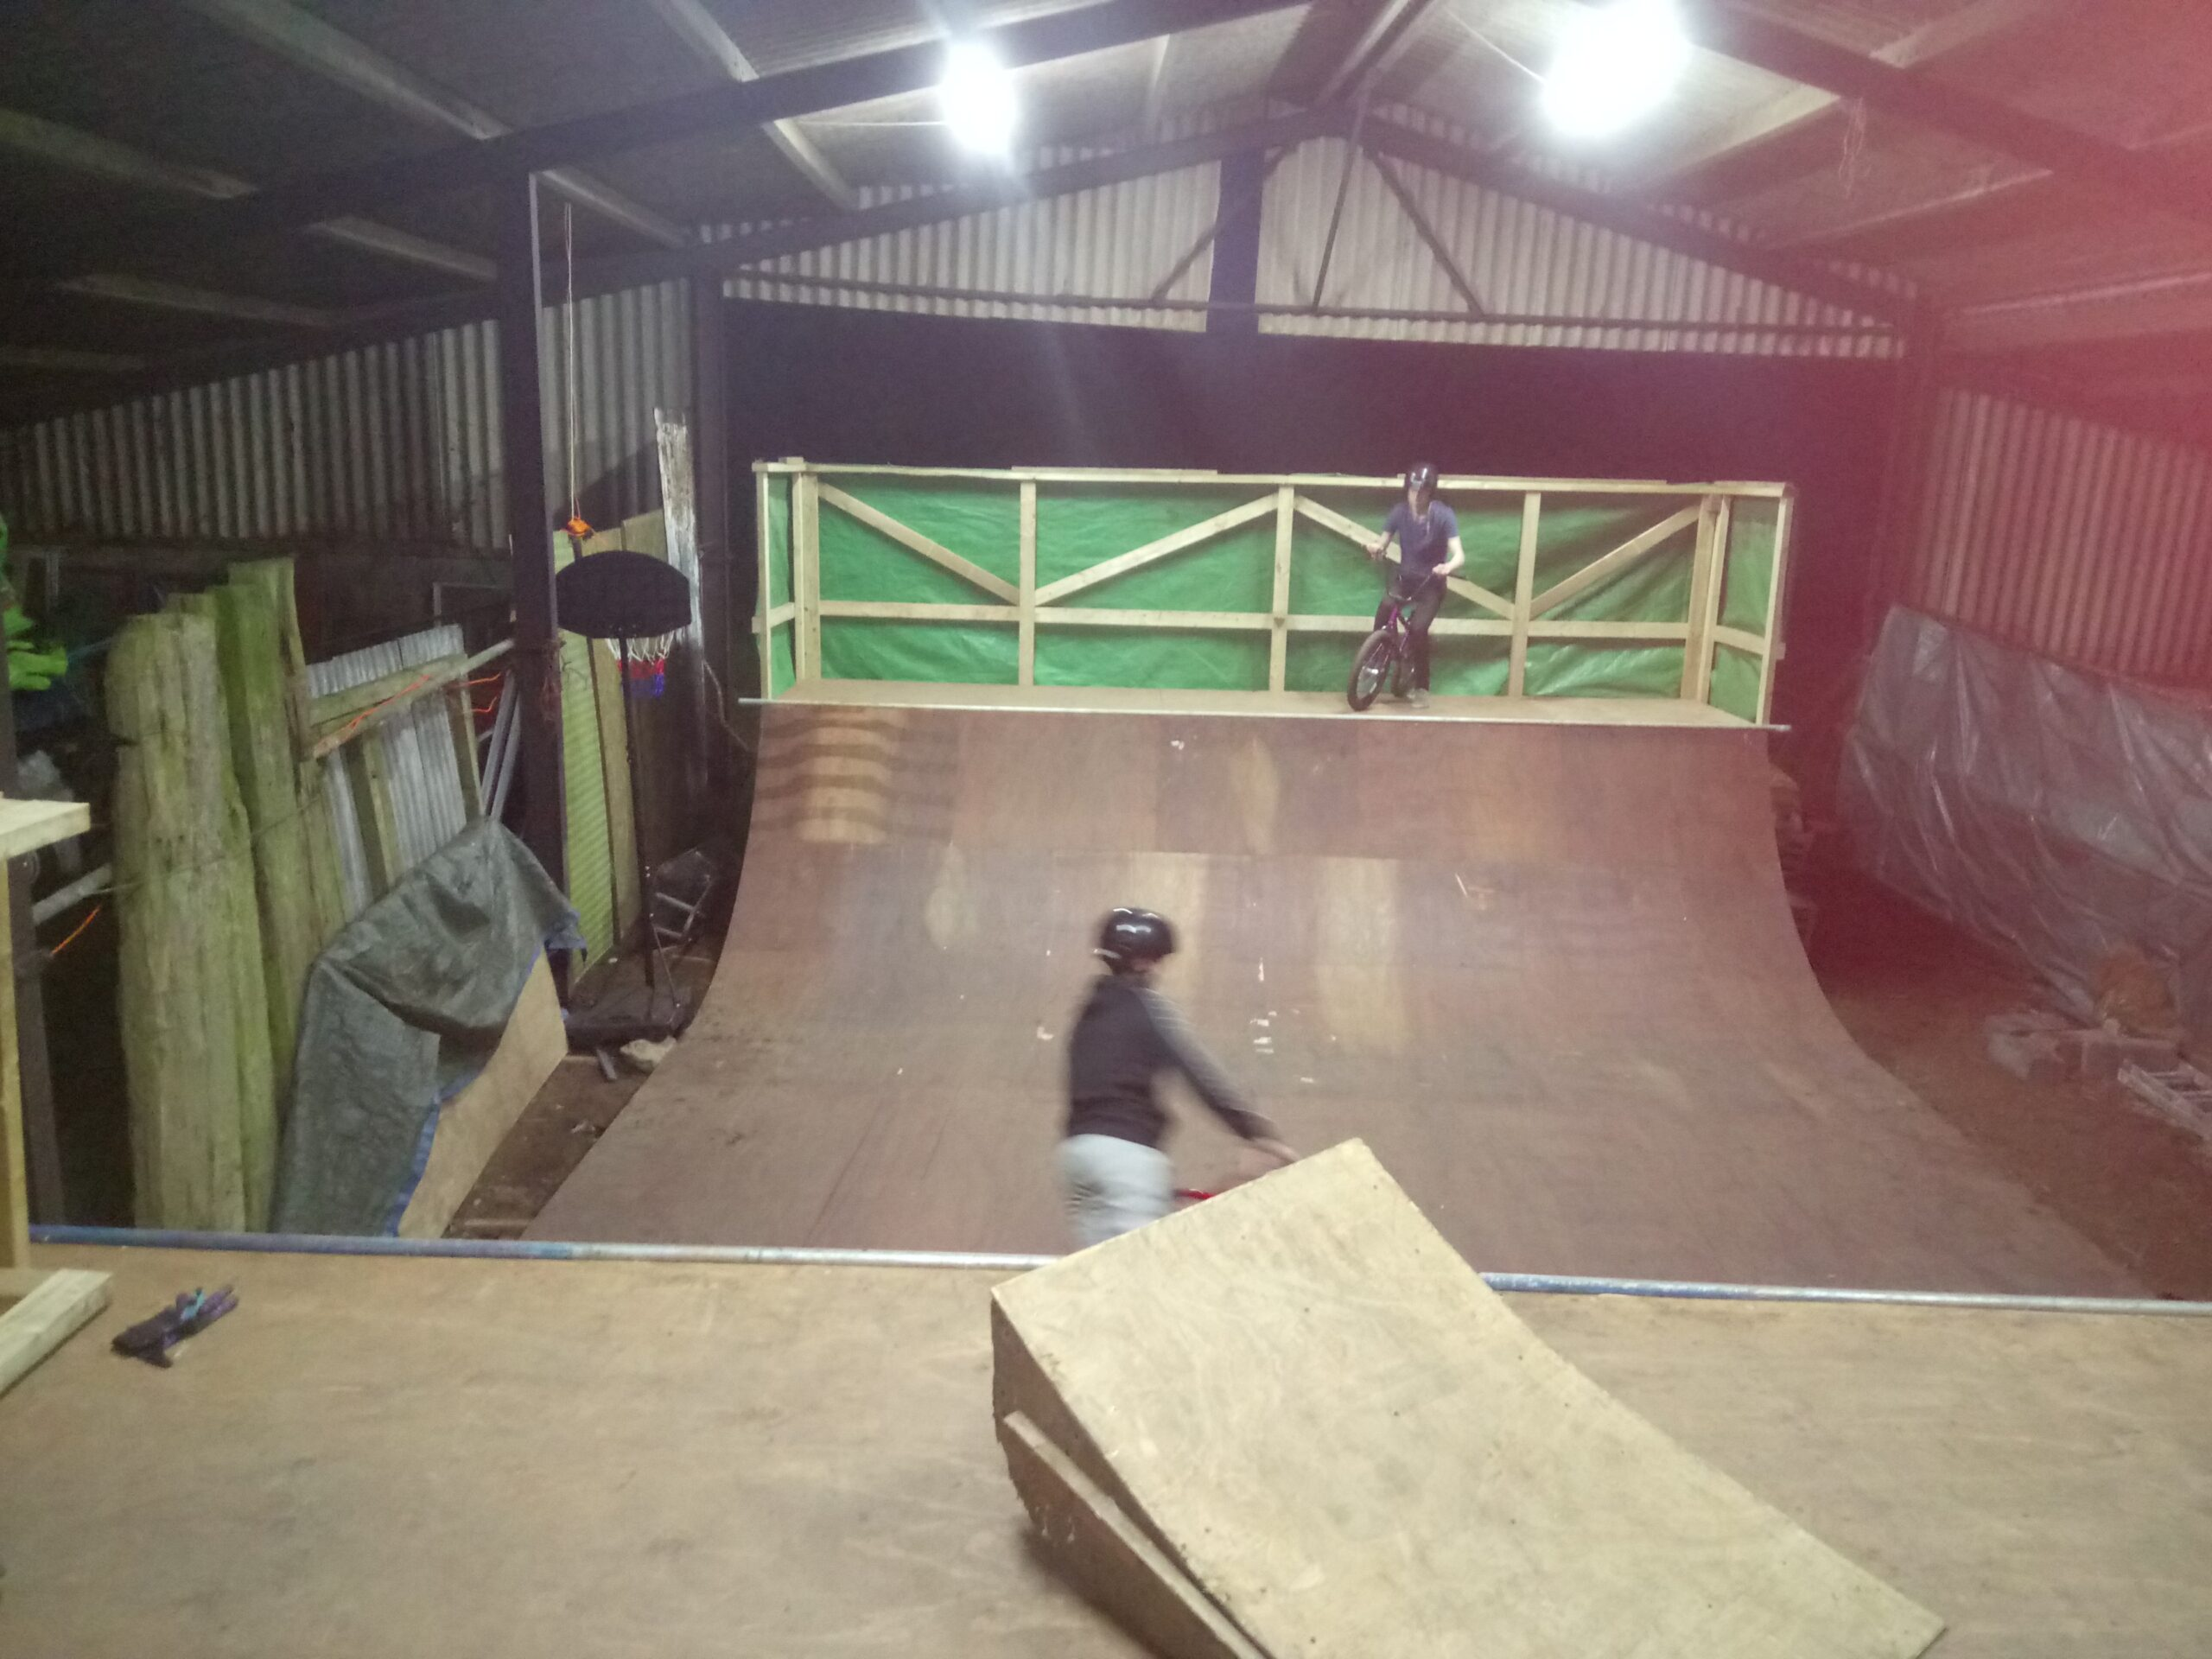 Ramp pic scooter and BMX rider